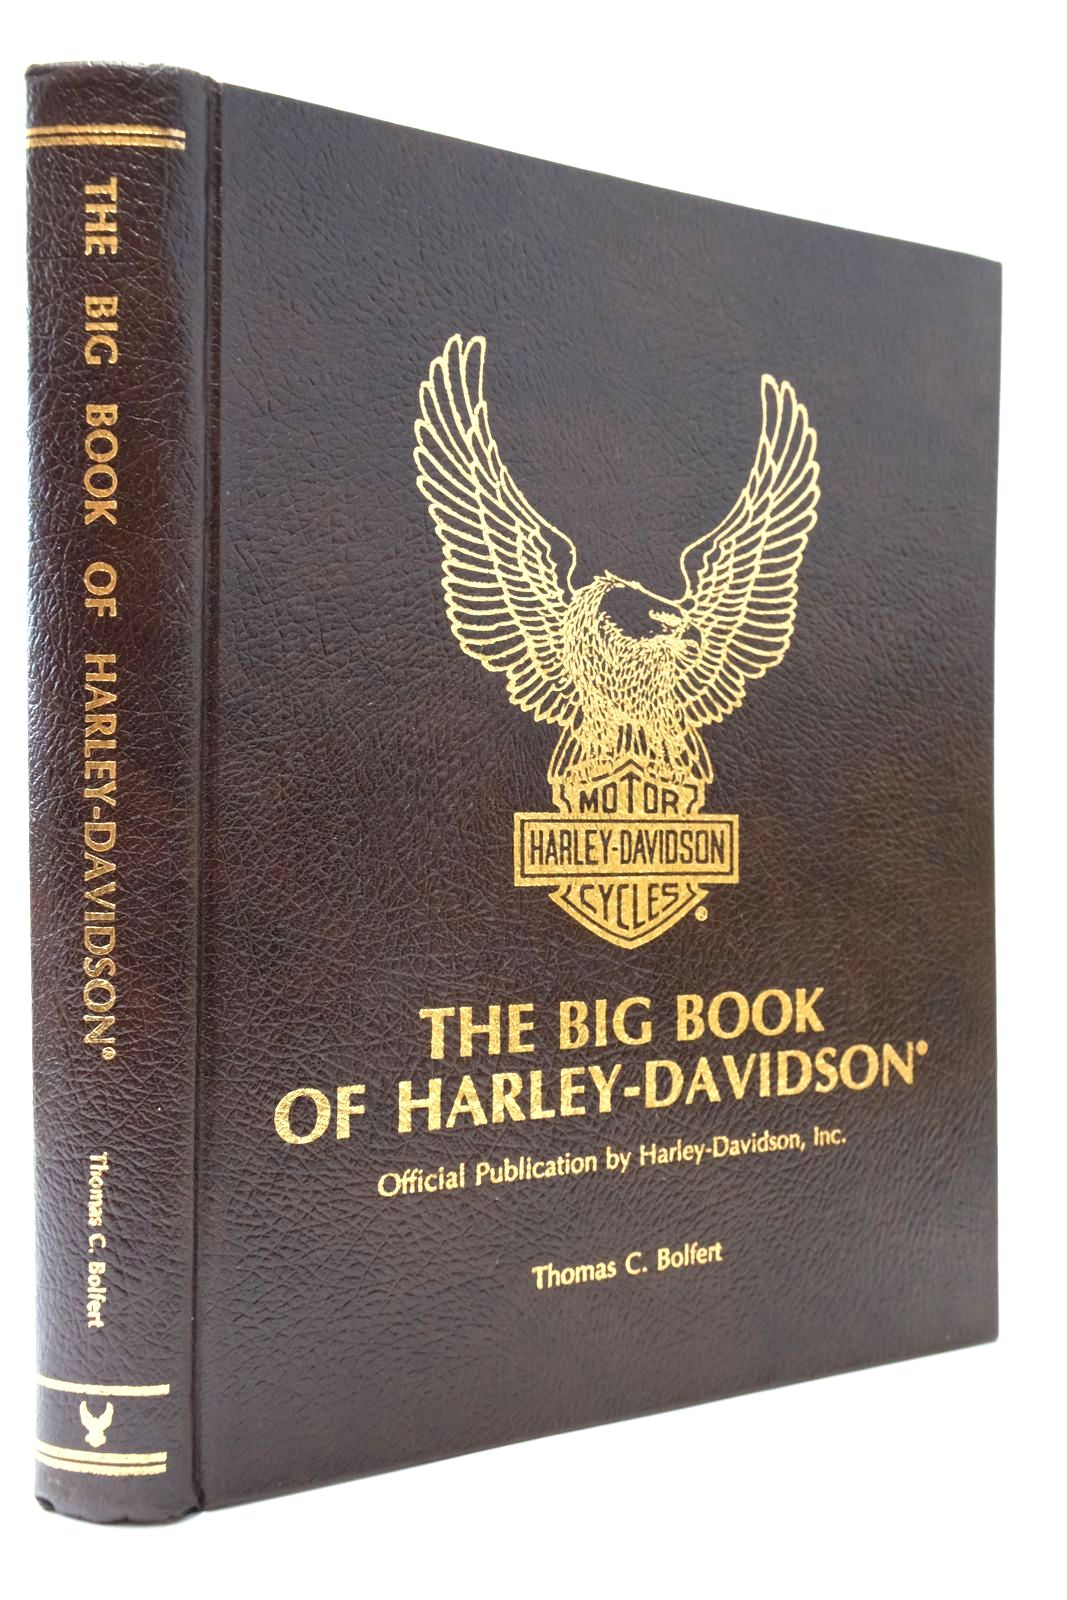 Photo of THE BIG BOOK OF HARLEY-DAVIDSON- Stock Number: 2133305